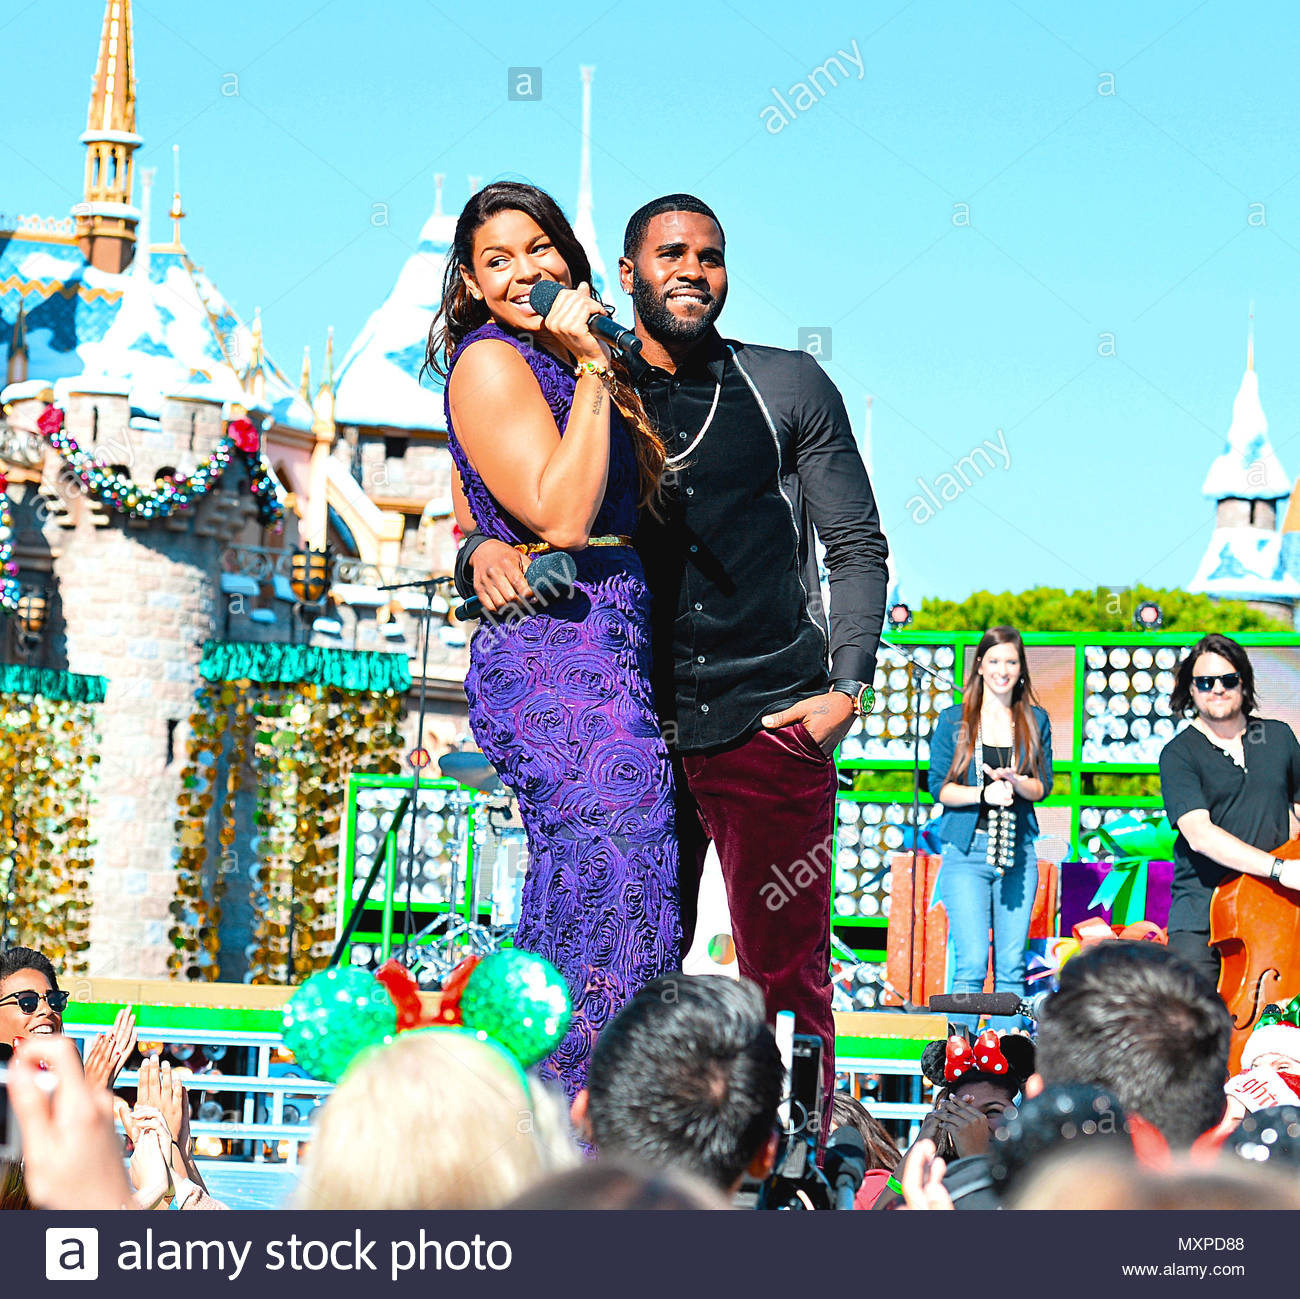 jordin sparks and reported fiance jason derulo pre taped a performance for the disney parks christmas day parade tv christmas special which airs on abc at